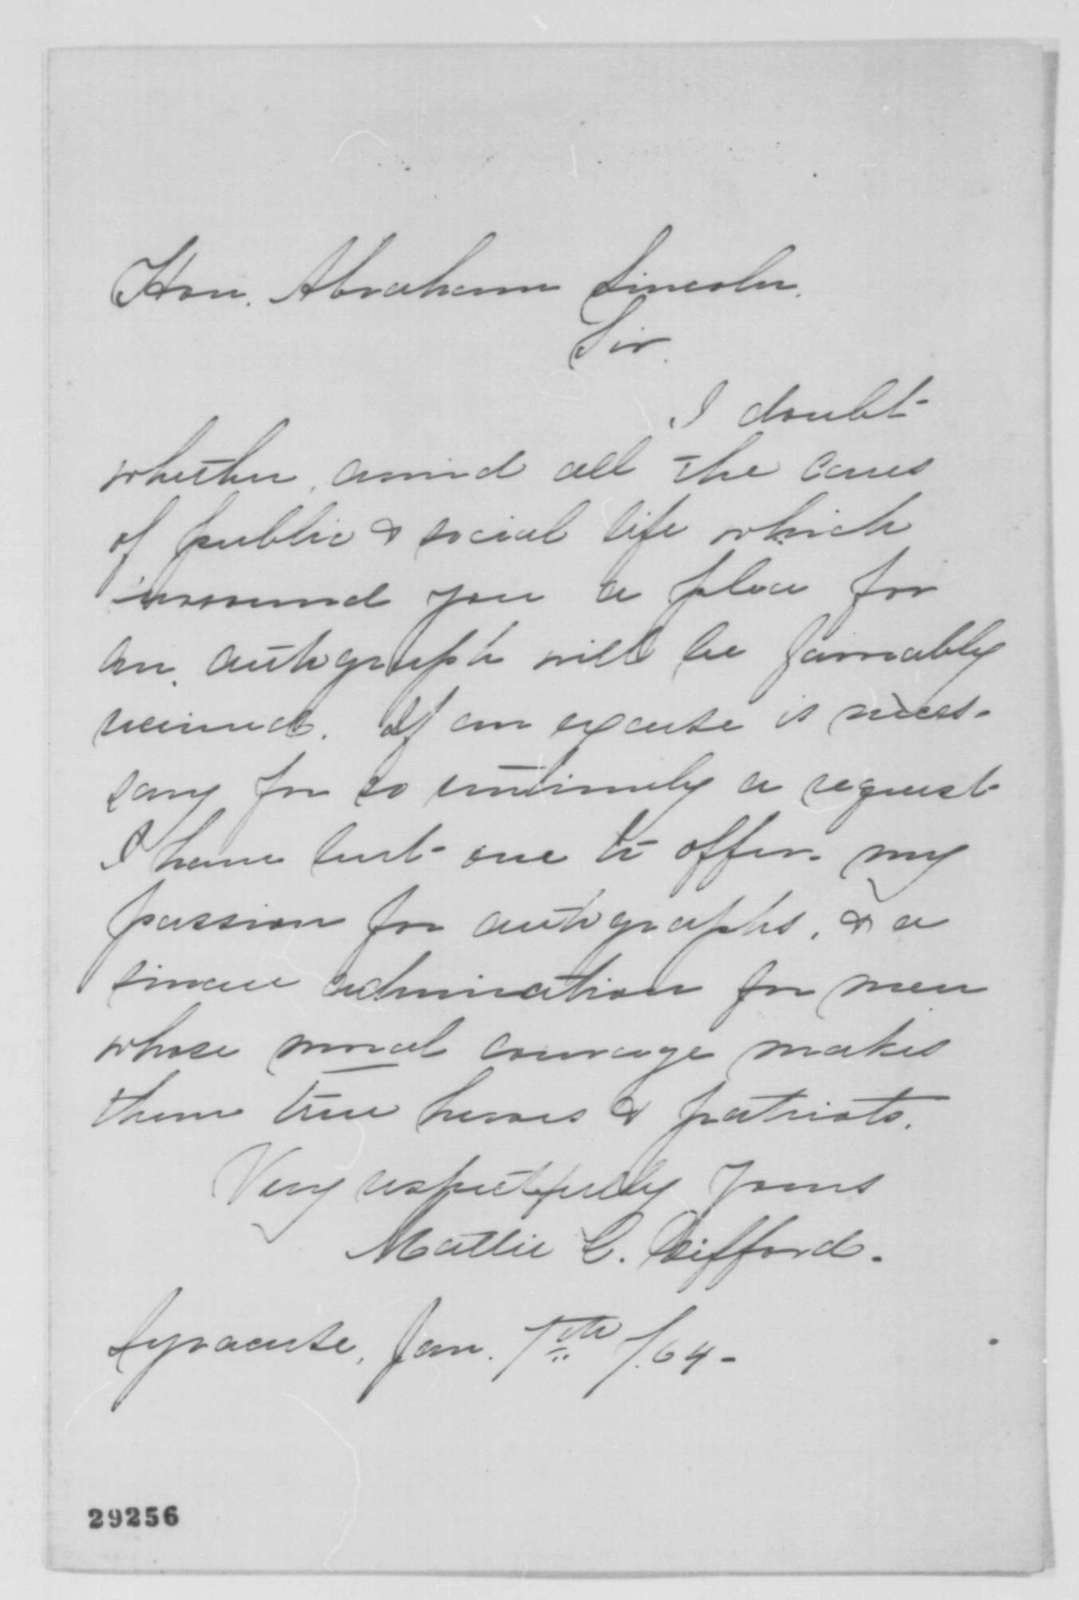 Mattie C. Gifford to Abraham Lincoln, Thursday, January 07, 1864  (Request for autograph)